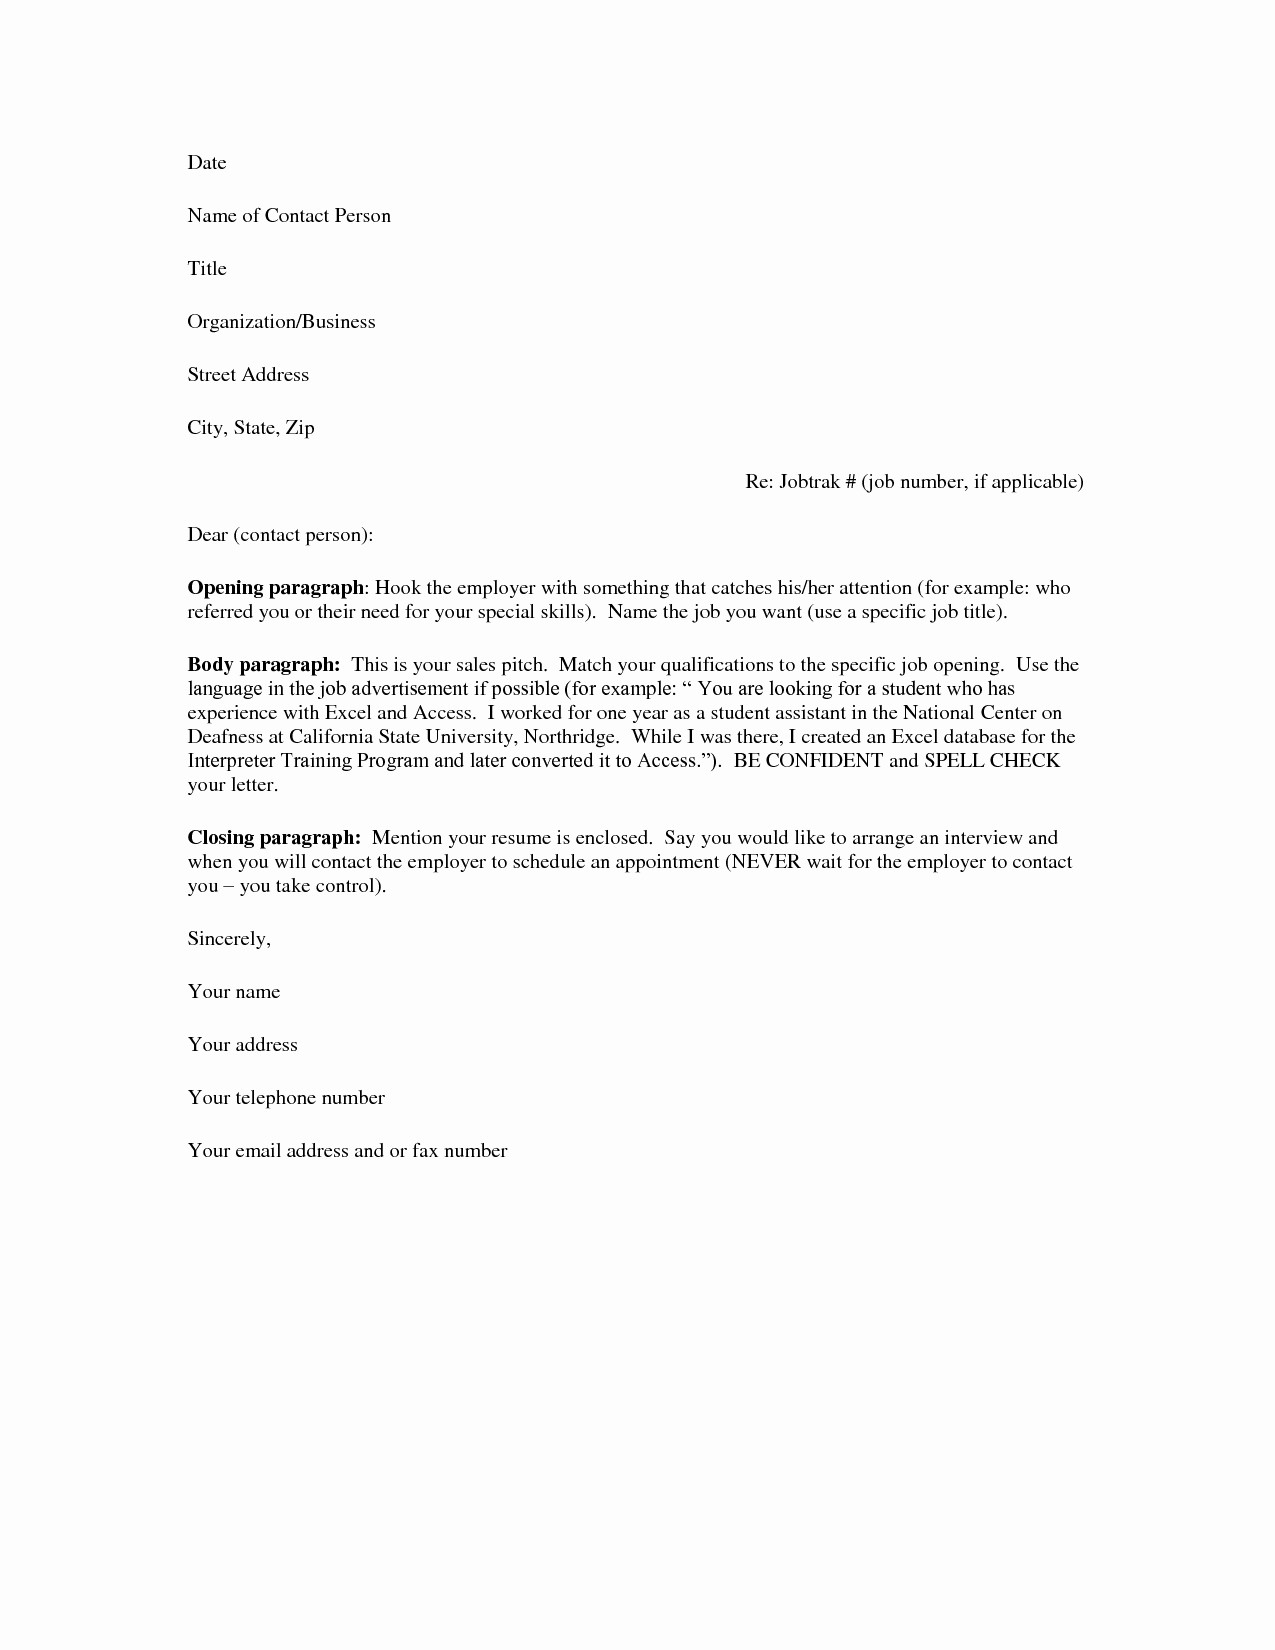 Basic Resume Cover Letter Template Luxury Basic Cover Letter Template Free